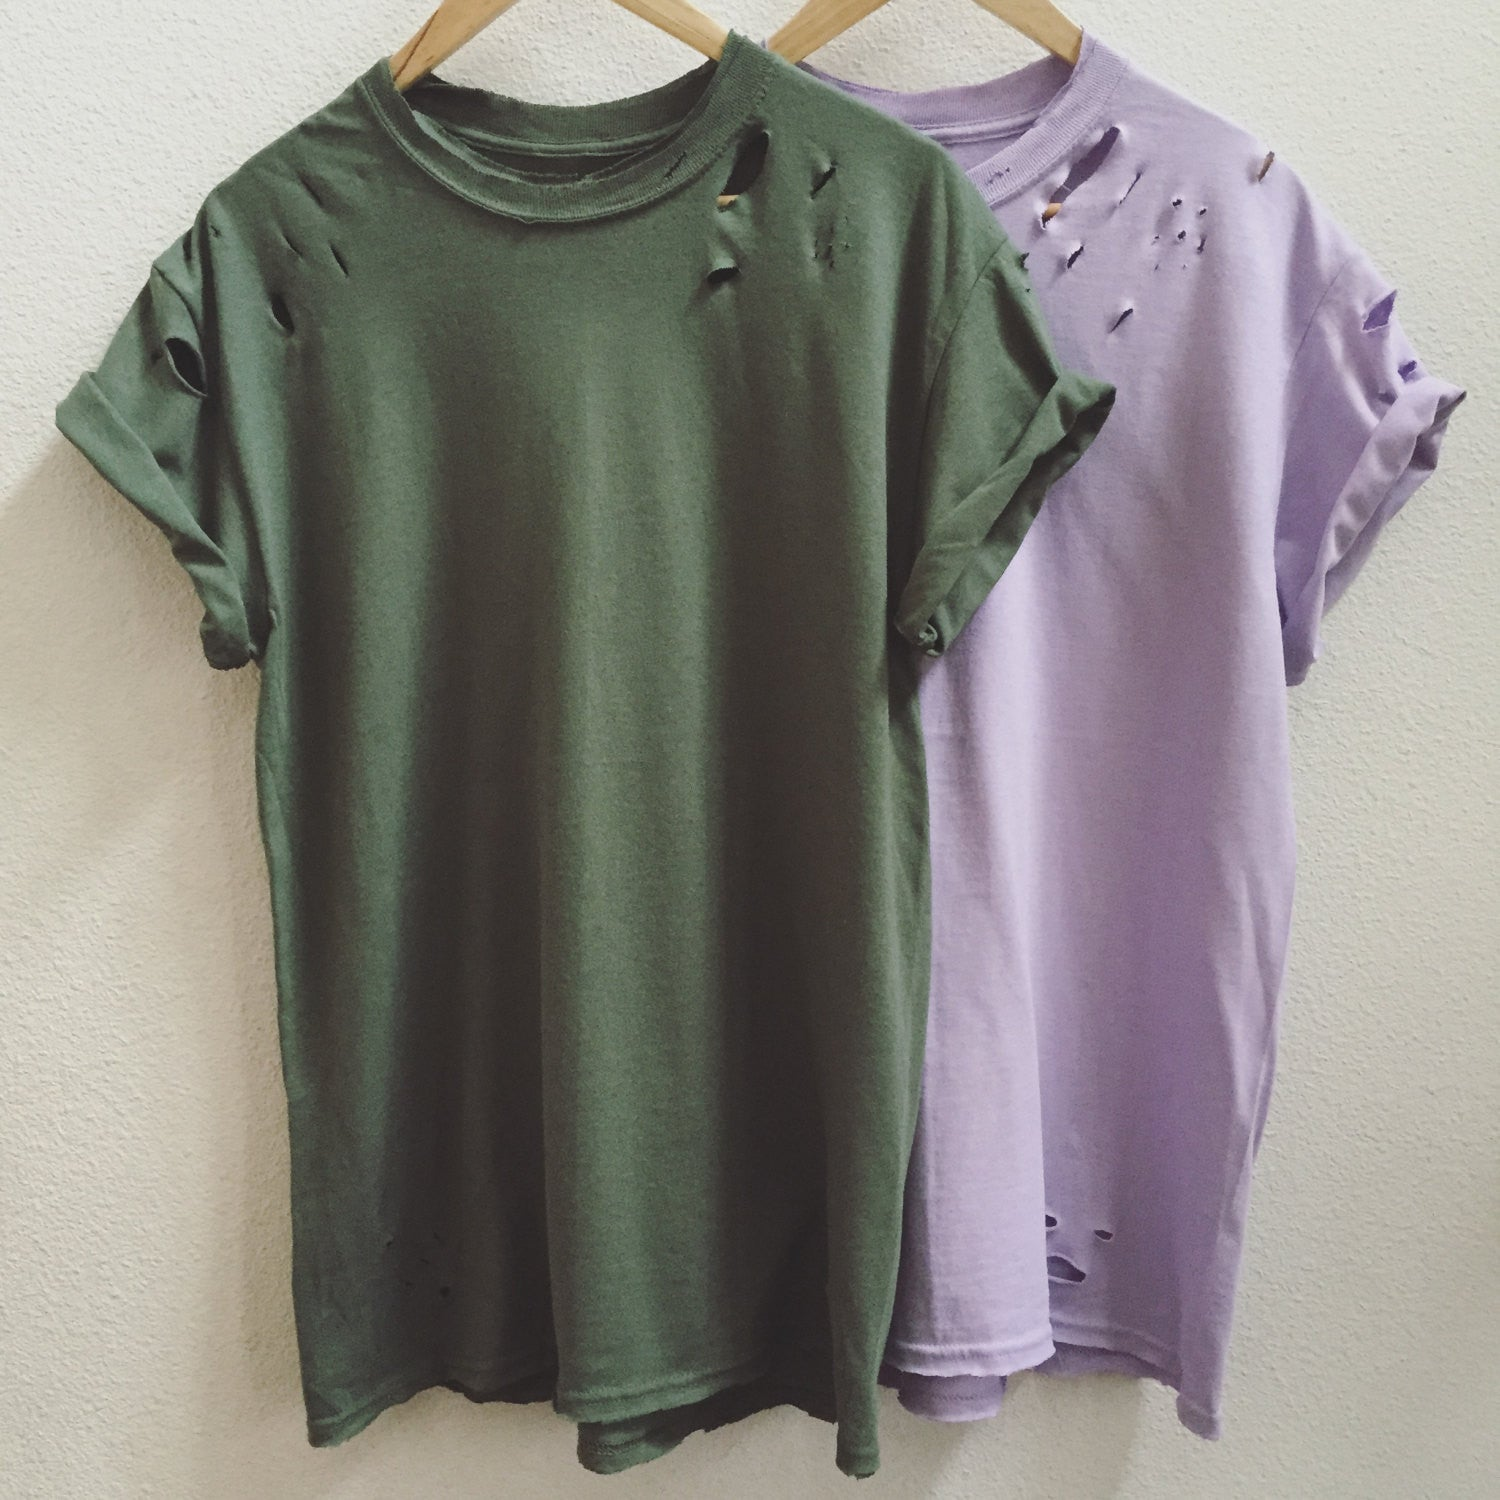 Distressed Unisex T-Shirt Green+Purple